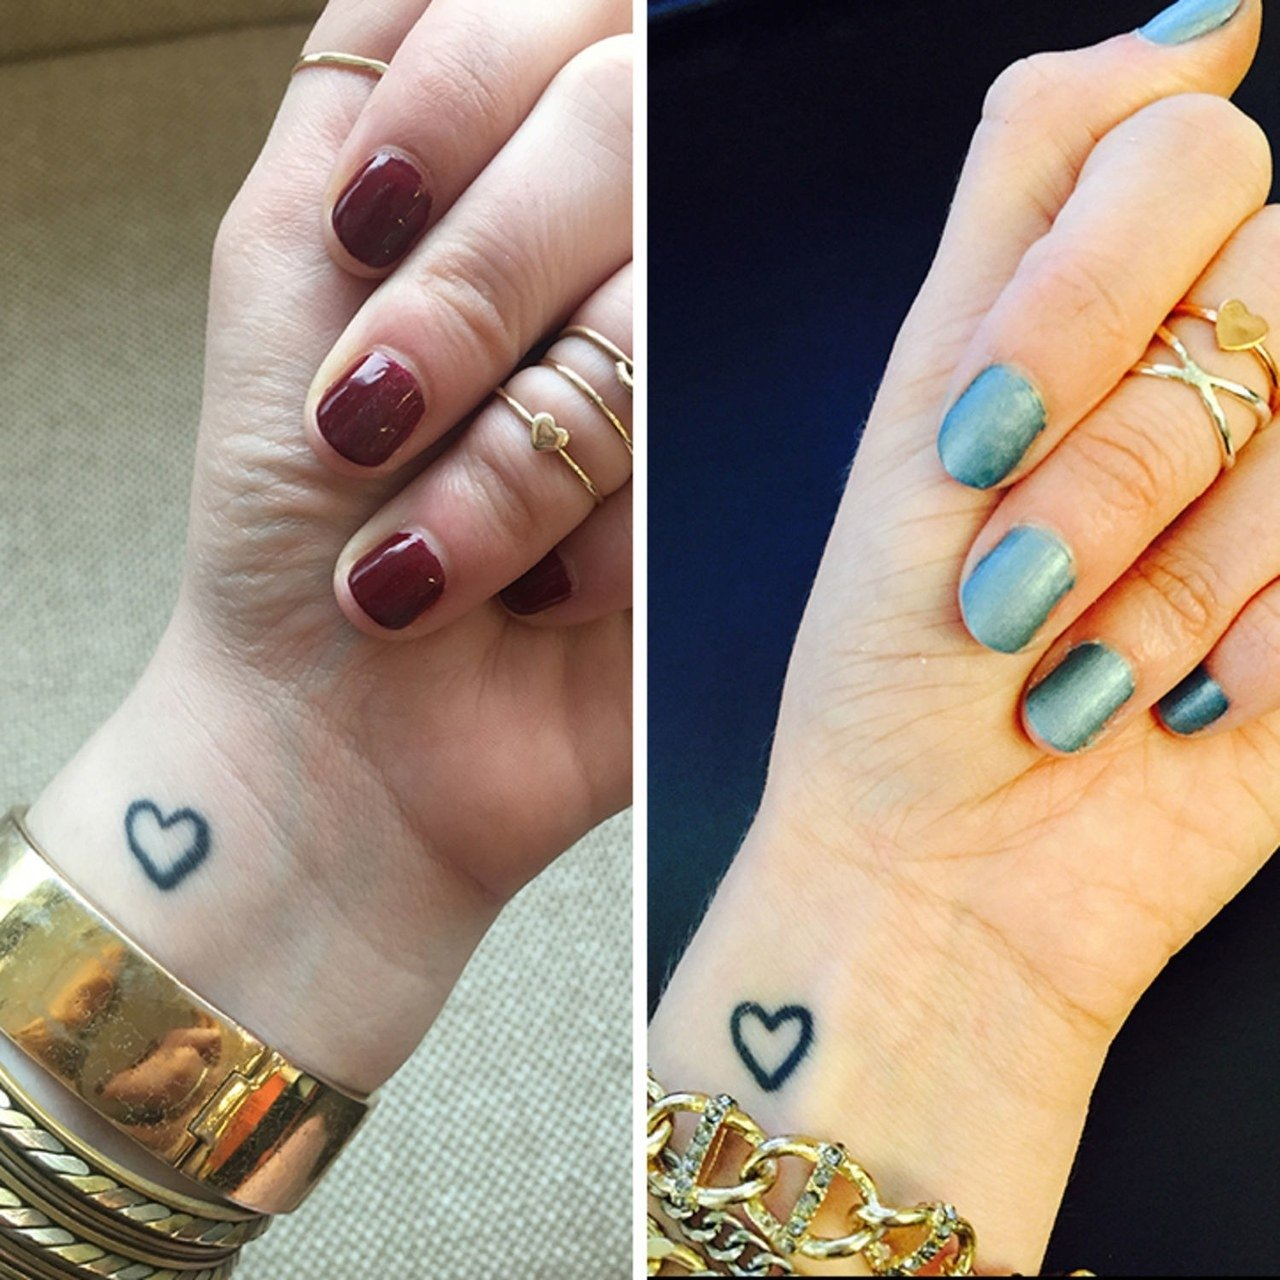 10 Great Matching Tattoo Ideas For Friends best friend tattoos what to consider when getting a tattoo glamour 1 2021